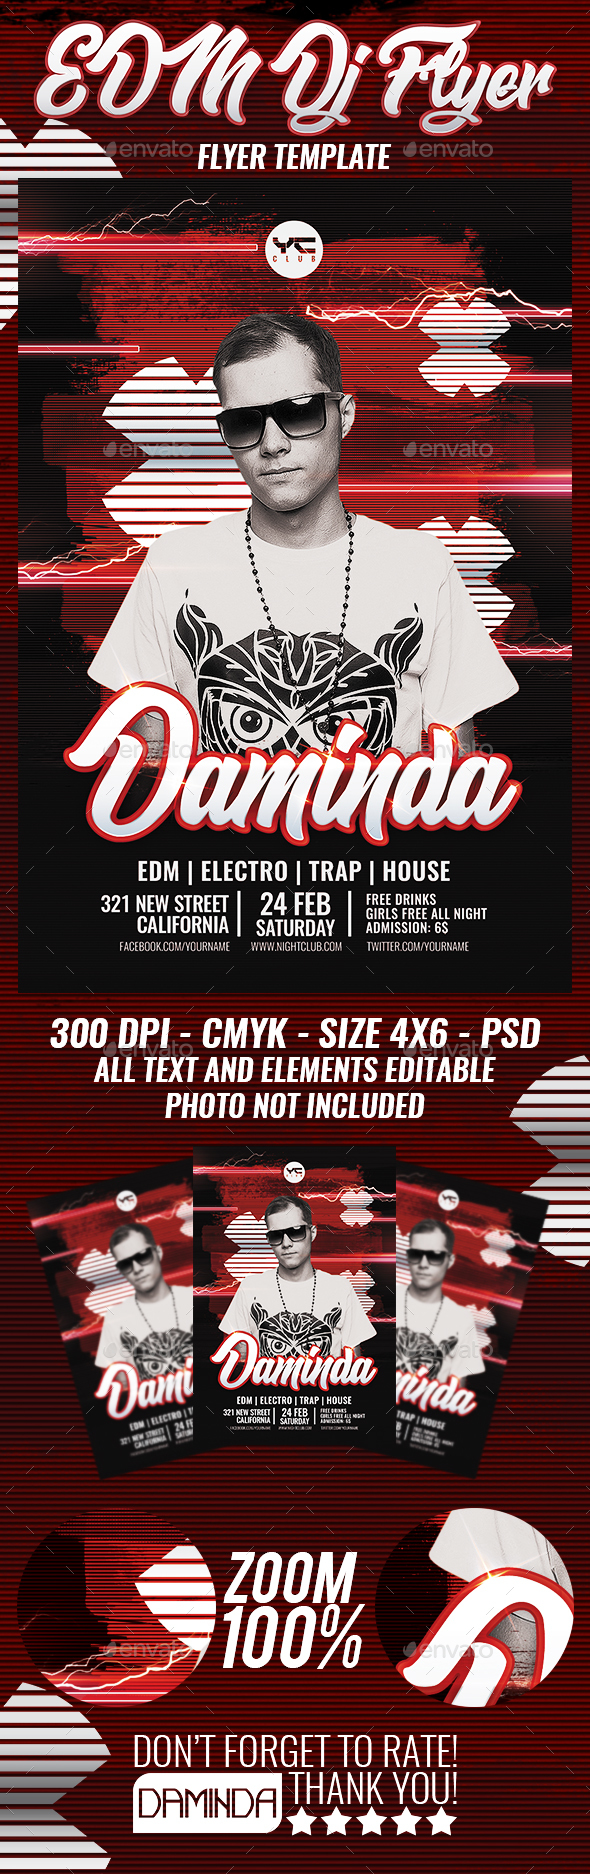 Electro Dj Poster 8 Flyer Template - Clubs & Parties Events